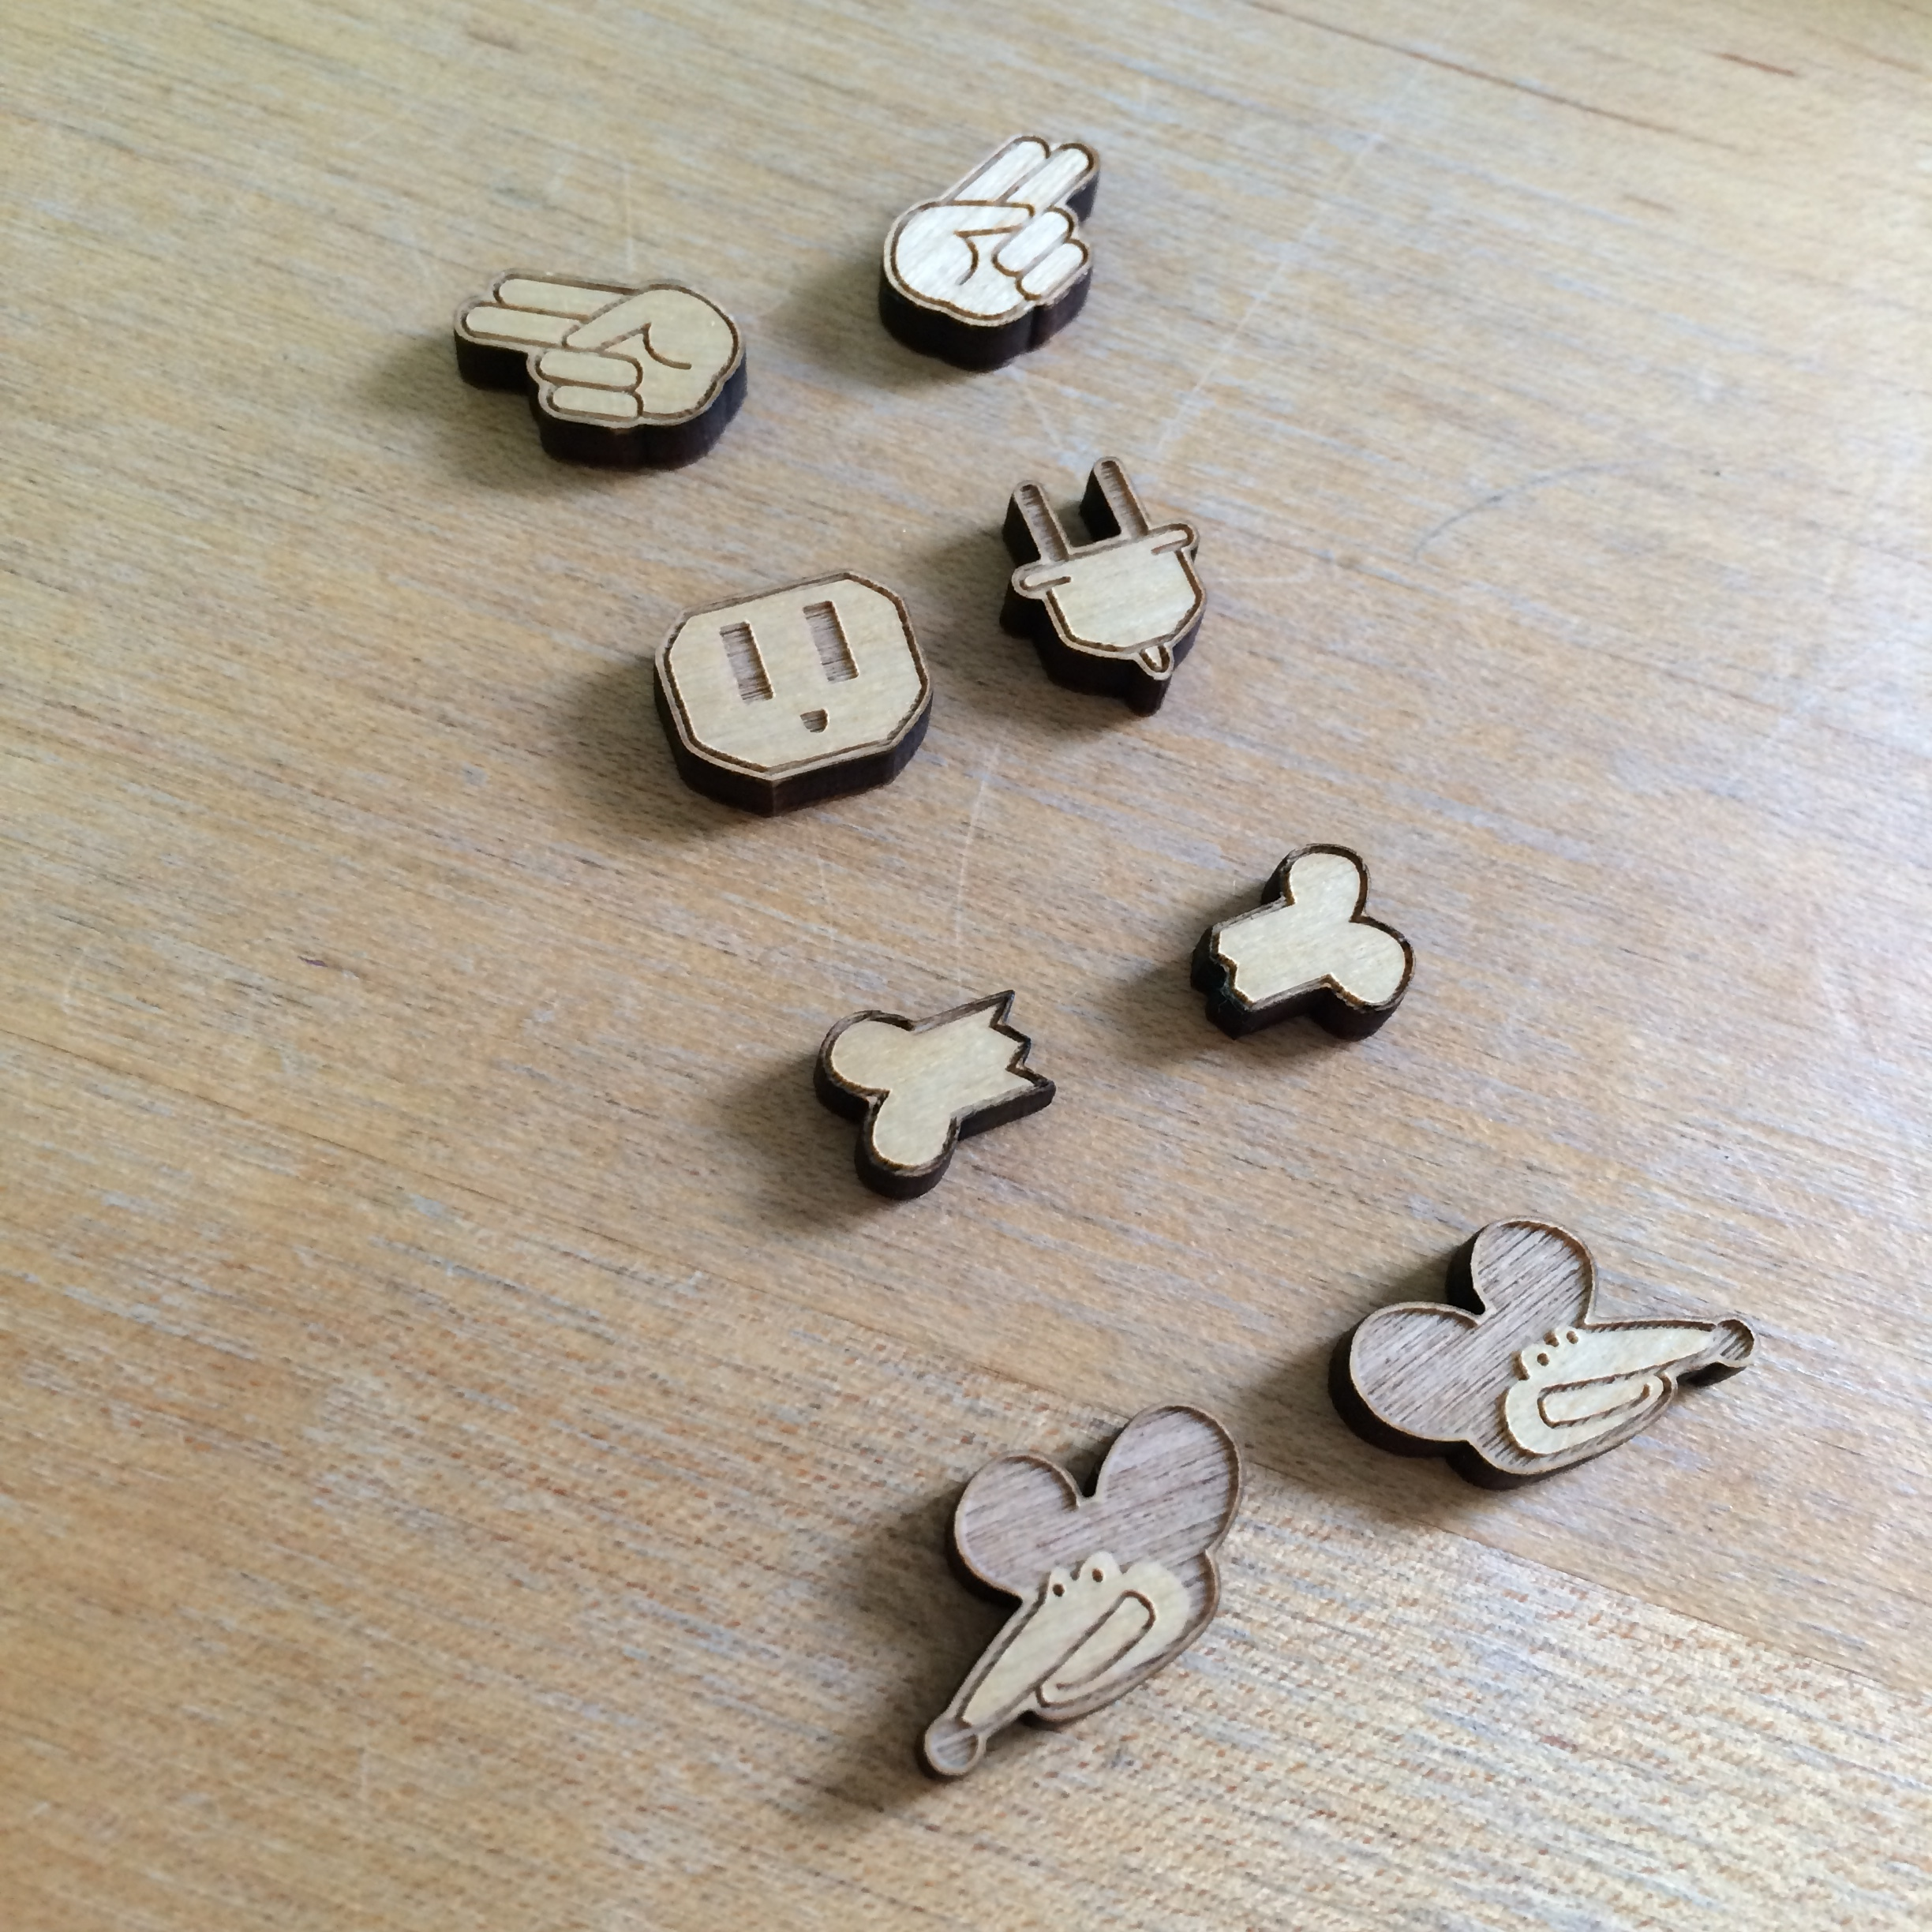 Laser etched wooden earrings